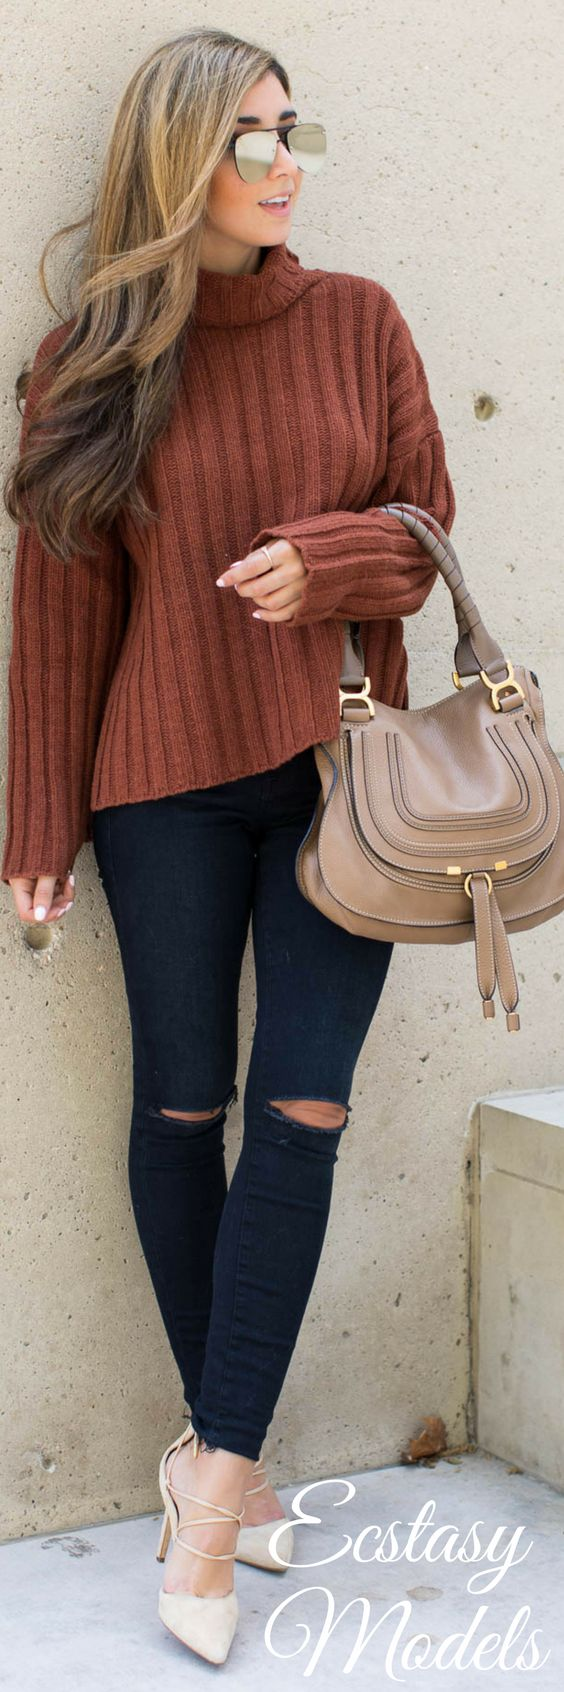 Autumn // Fashion Look by The Darling Detail